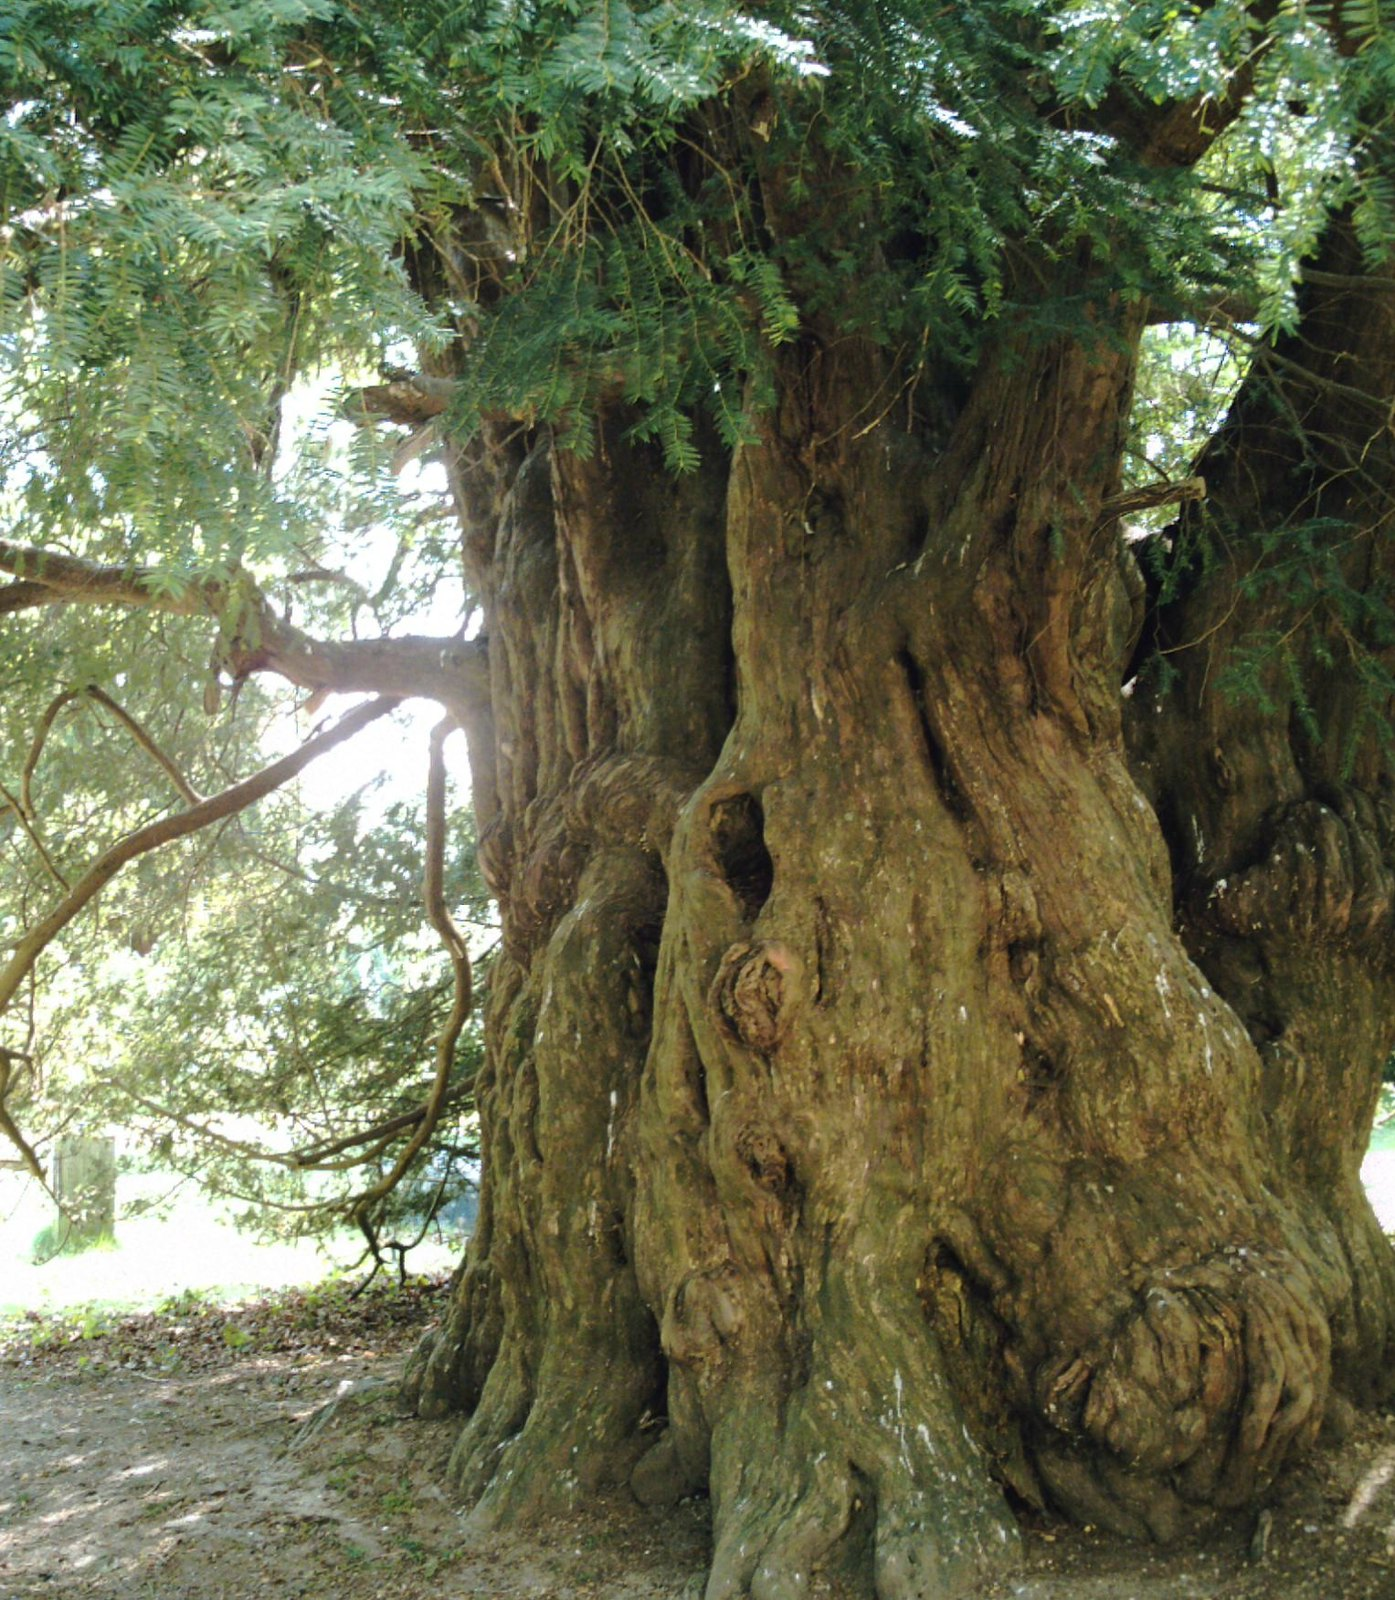 'Yew so ancient!' 800 year old Yew at St Mary's Parish Church Slaugham; even older than some Ramblers. D.Allen Vivitar 5199 5mp